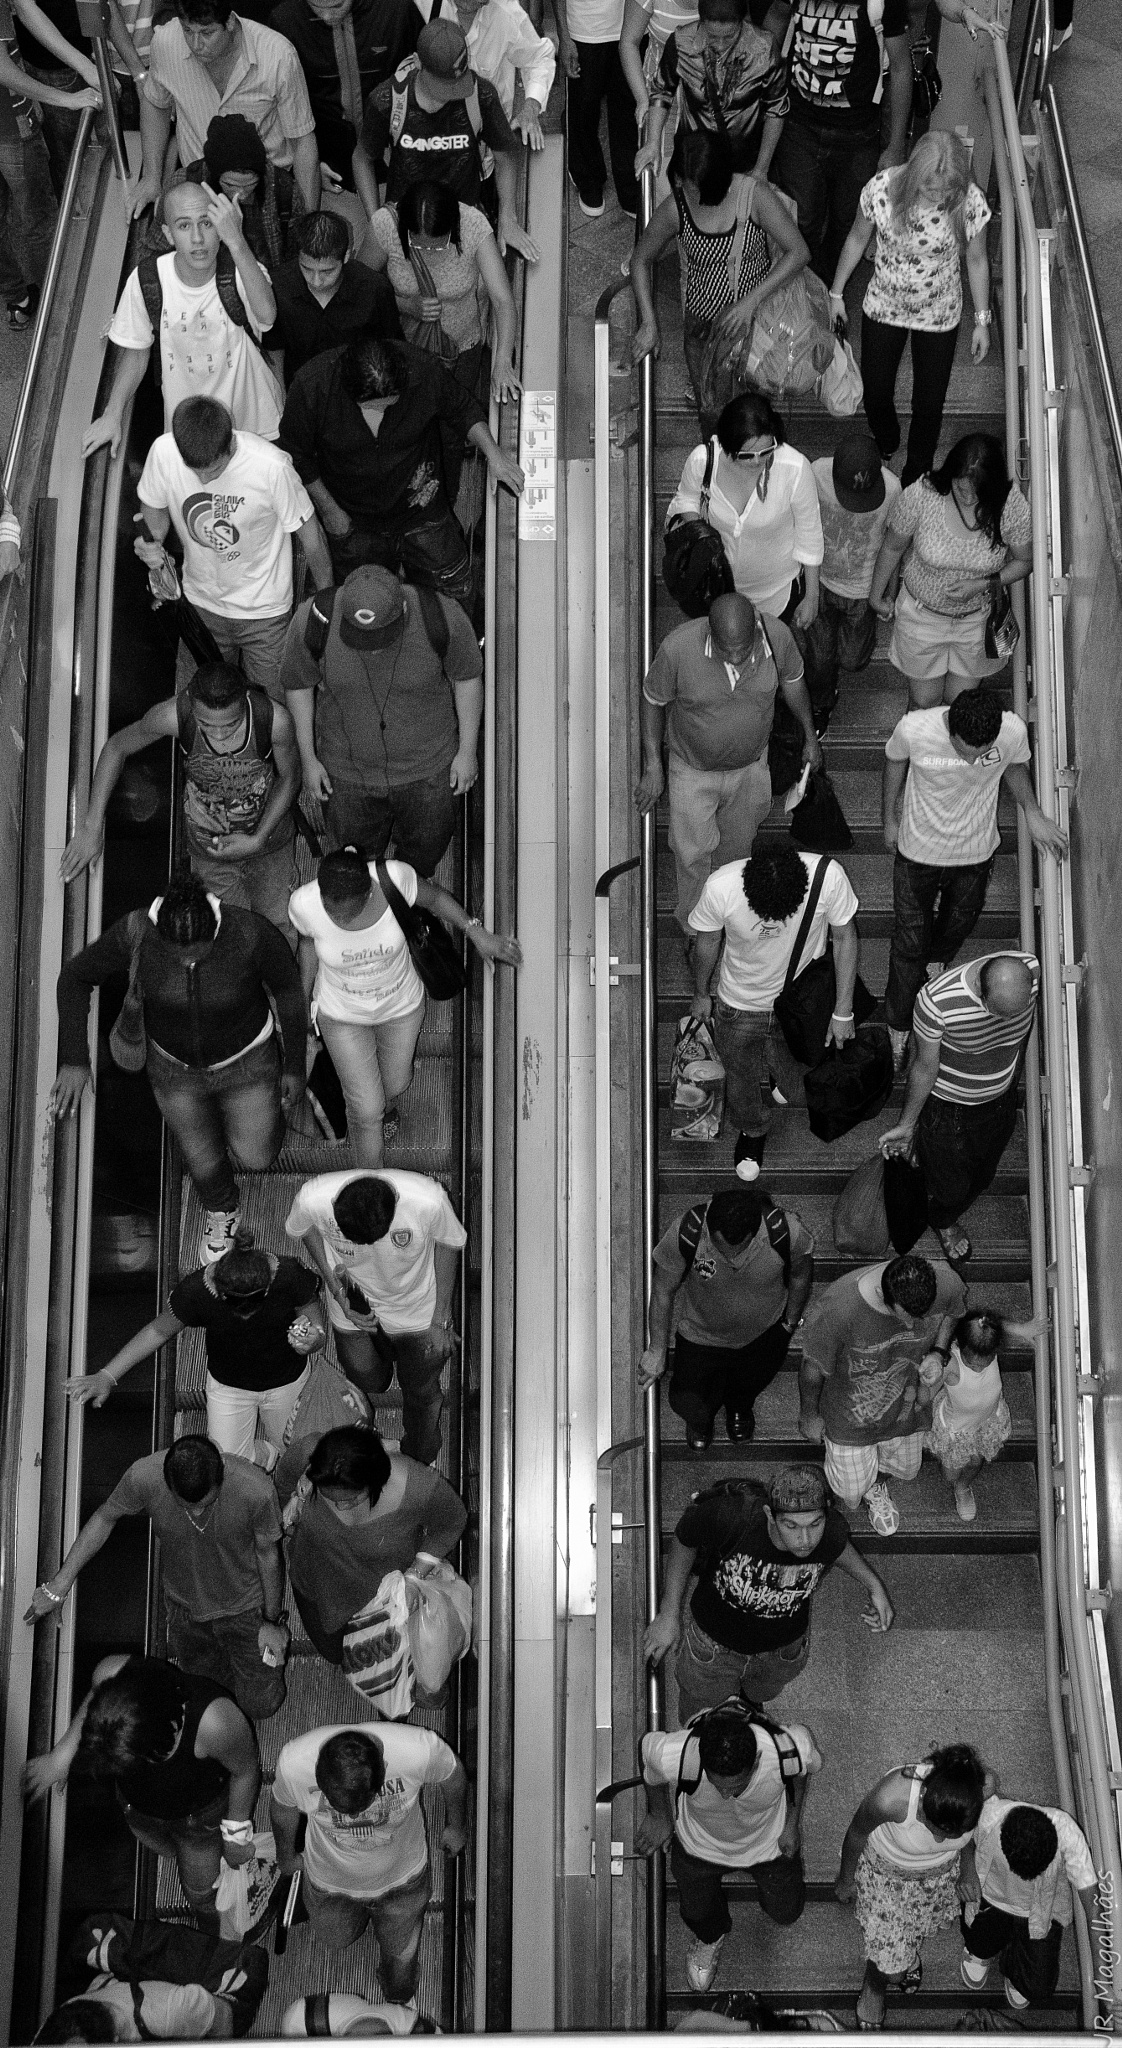 Crowded urban train at Estação da Luz/Sampa by Jose Roberto Magalhaes